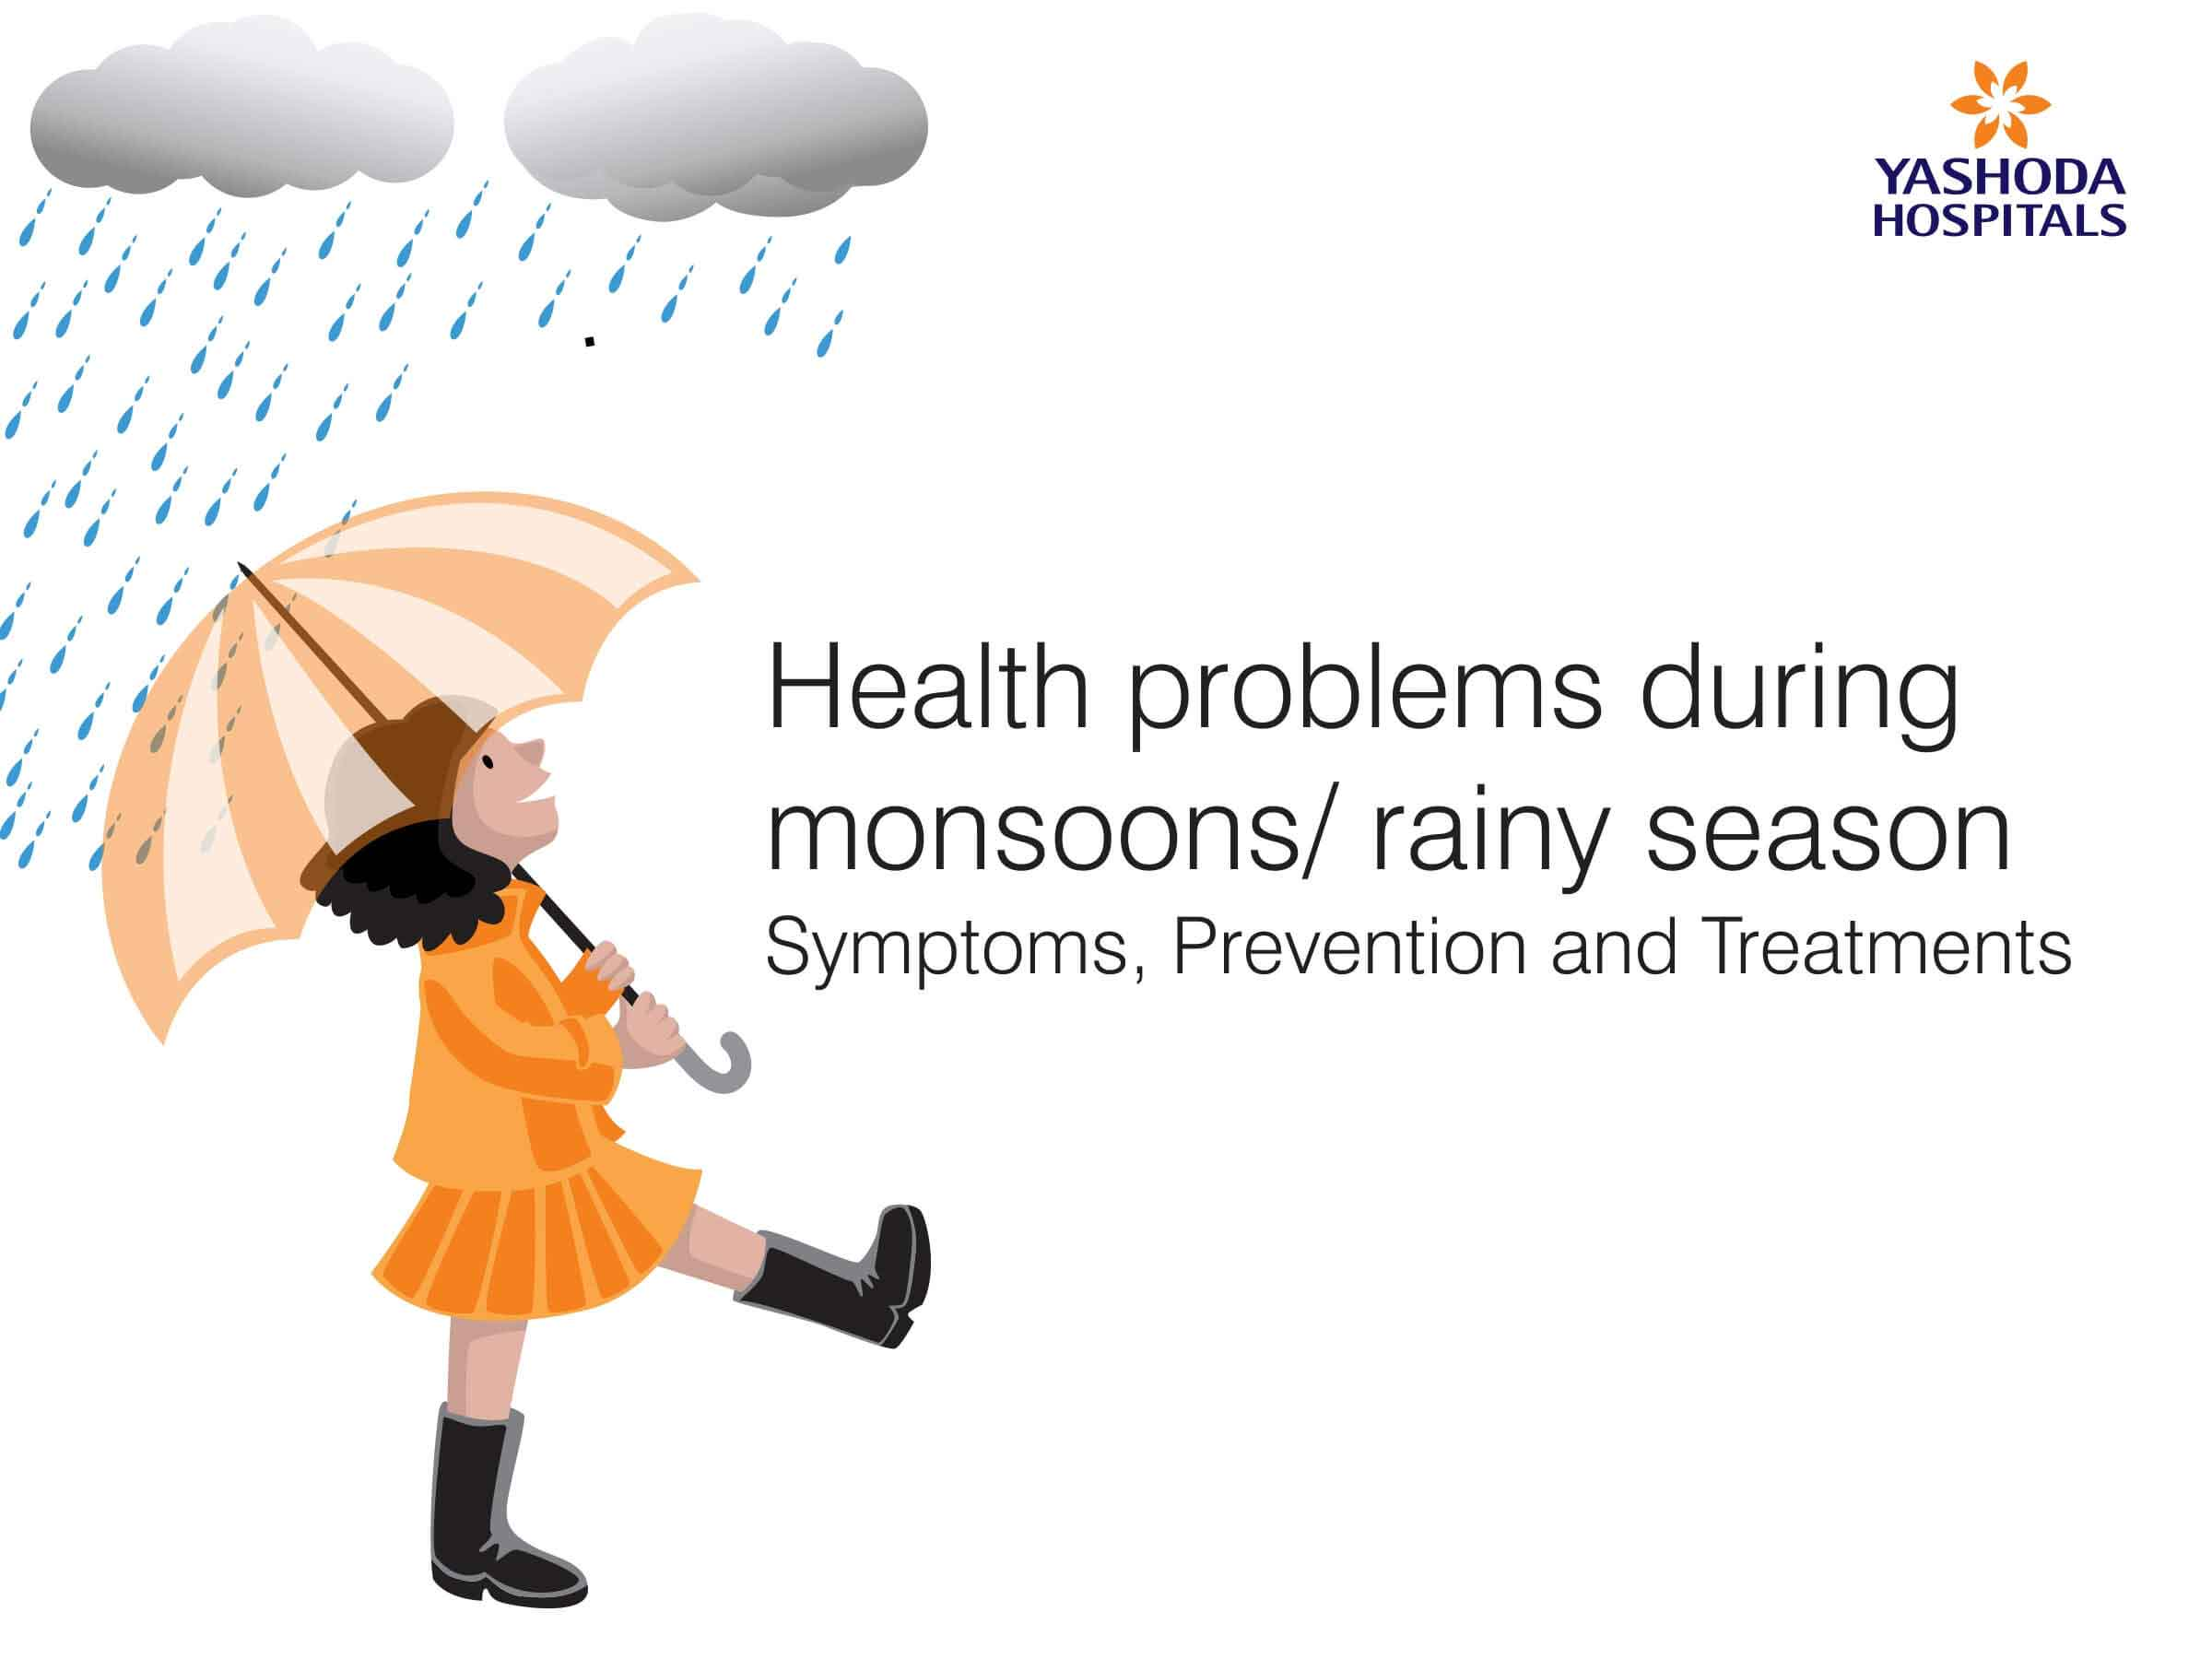 Health problems during monsoons